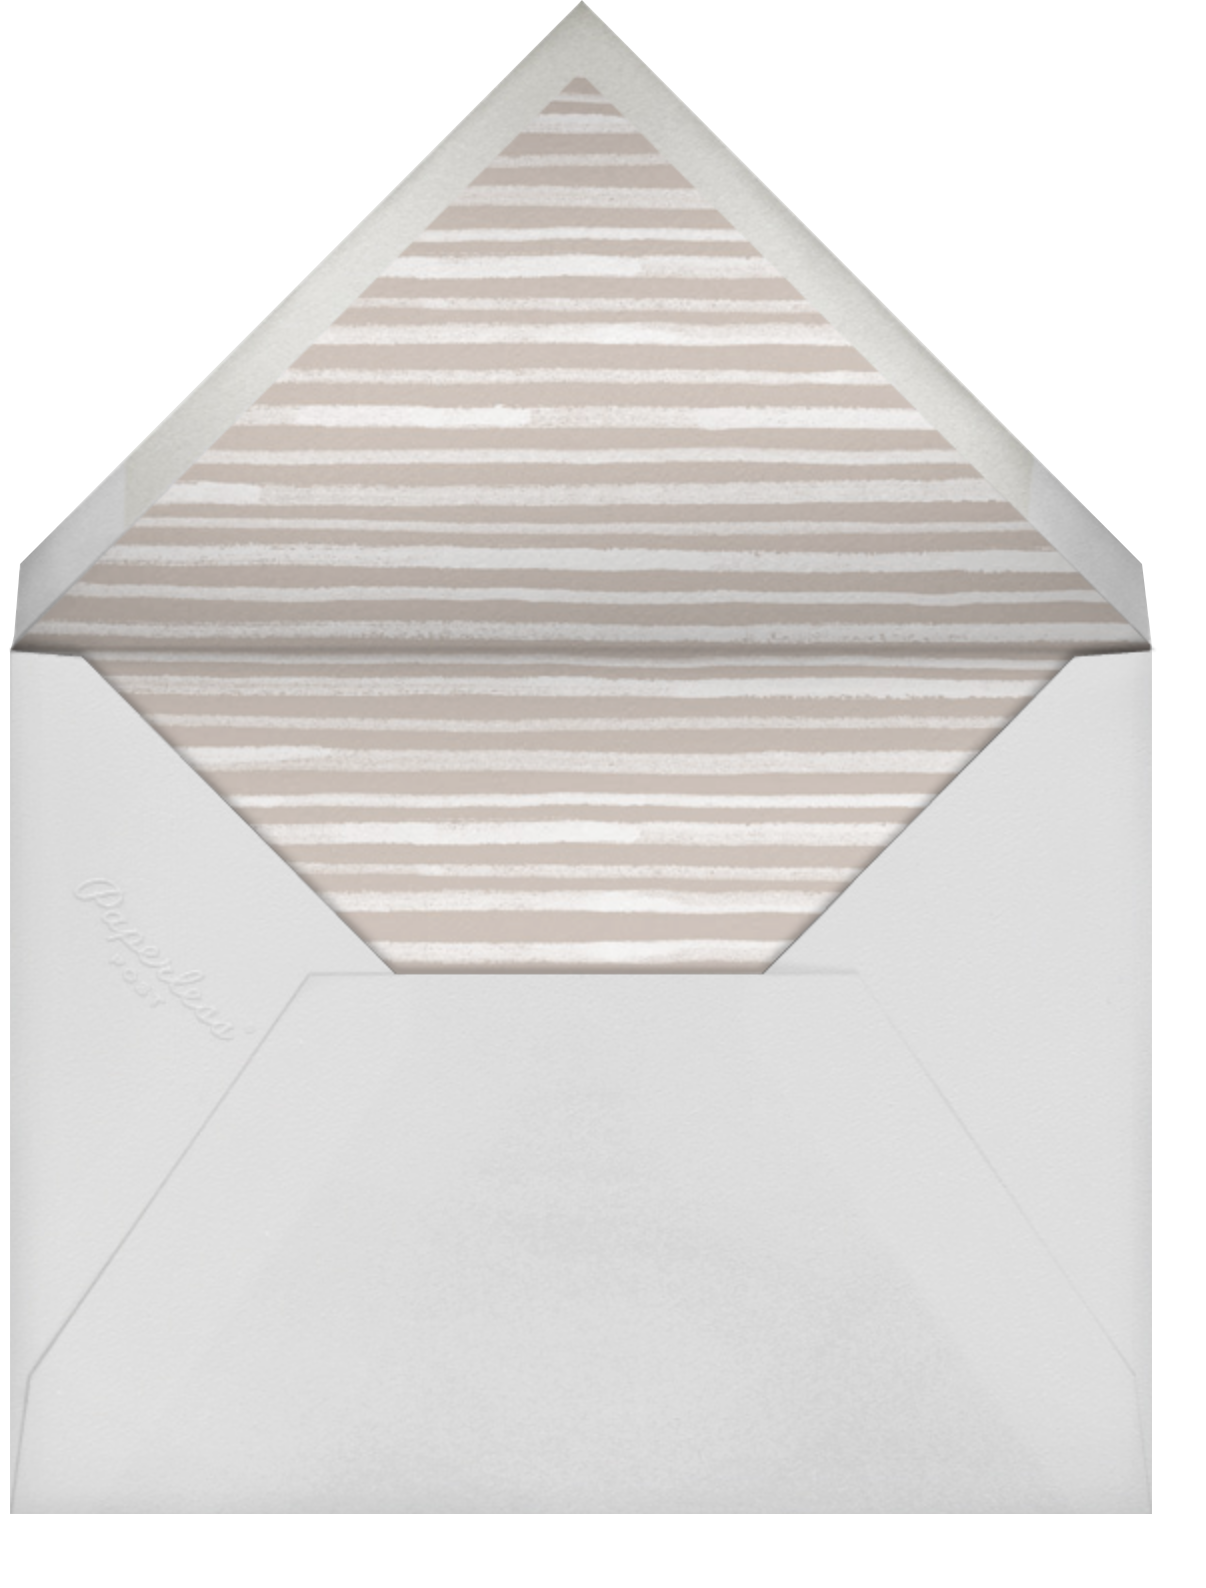 Tropical Palm - White - Paperless Post - Virtual wedding - envelope back